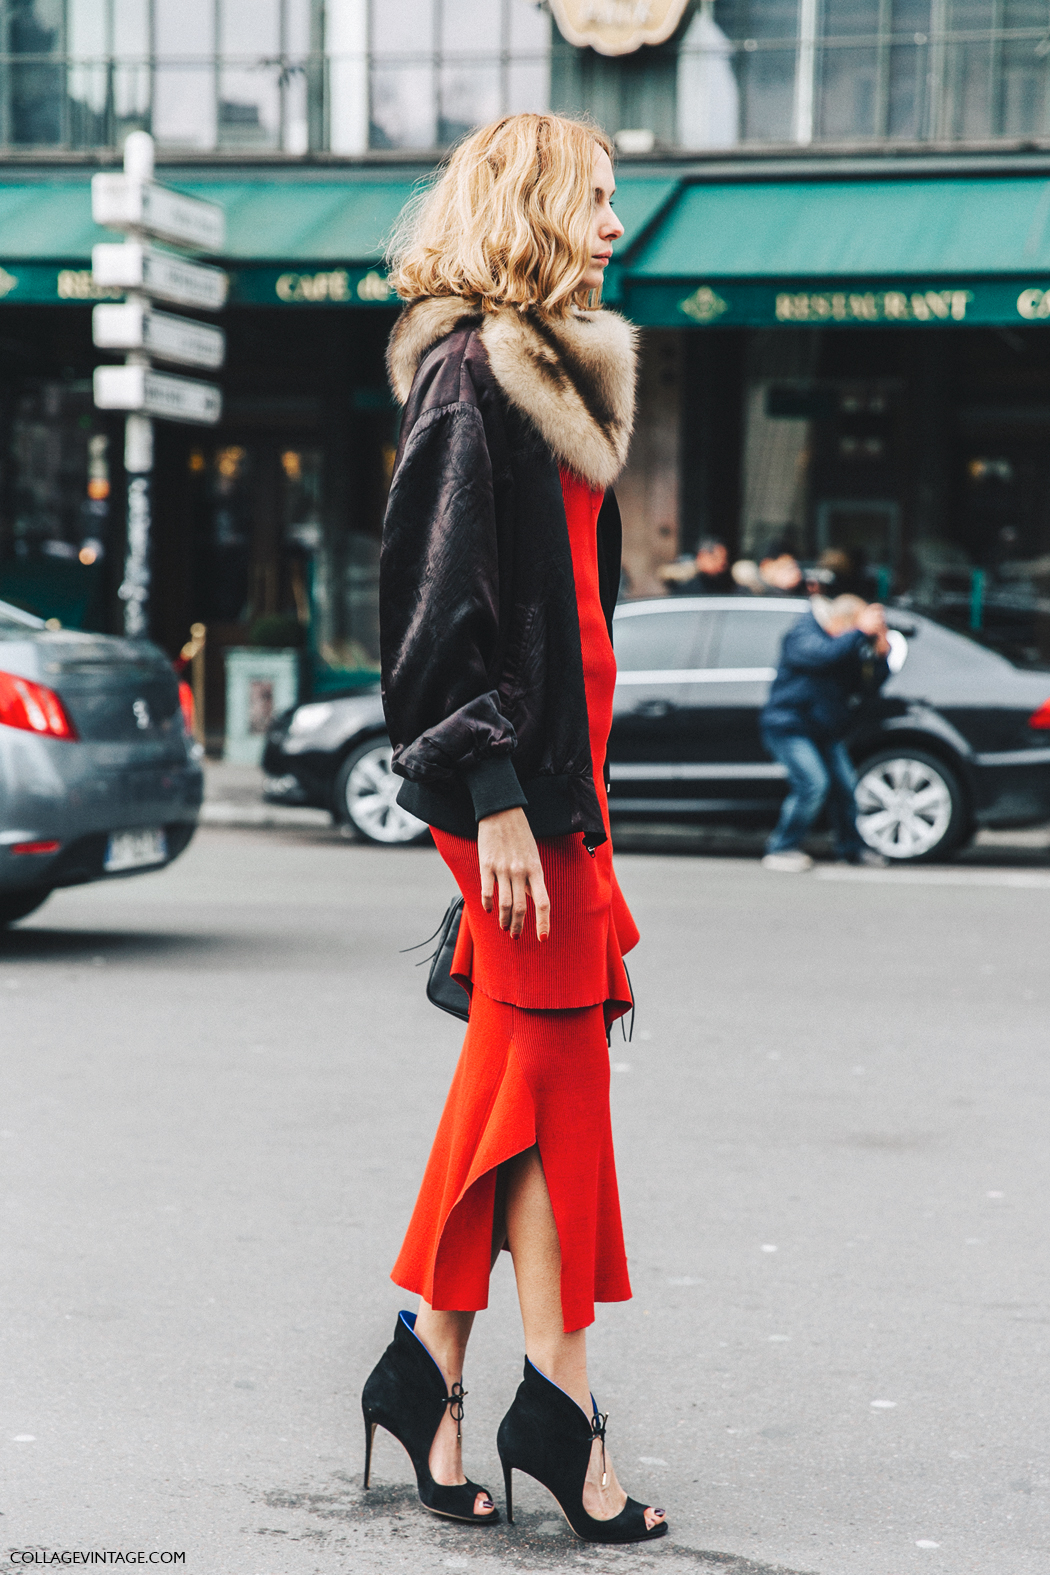 M8 Coolhunter 7 Maneras De Actualizar Tu Look En Rojo Y 1 No Lo Intentes Por Favor